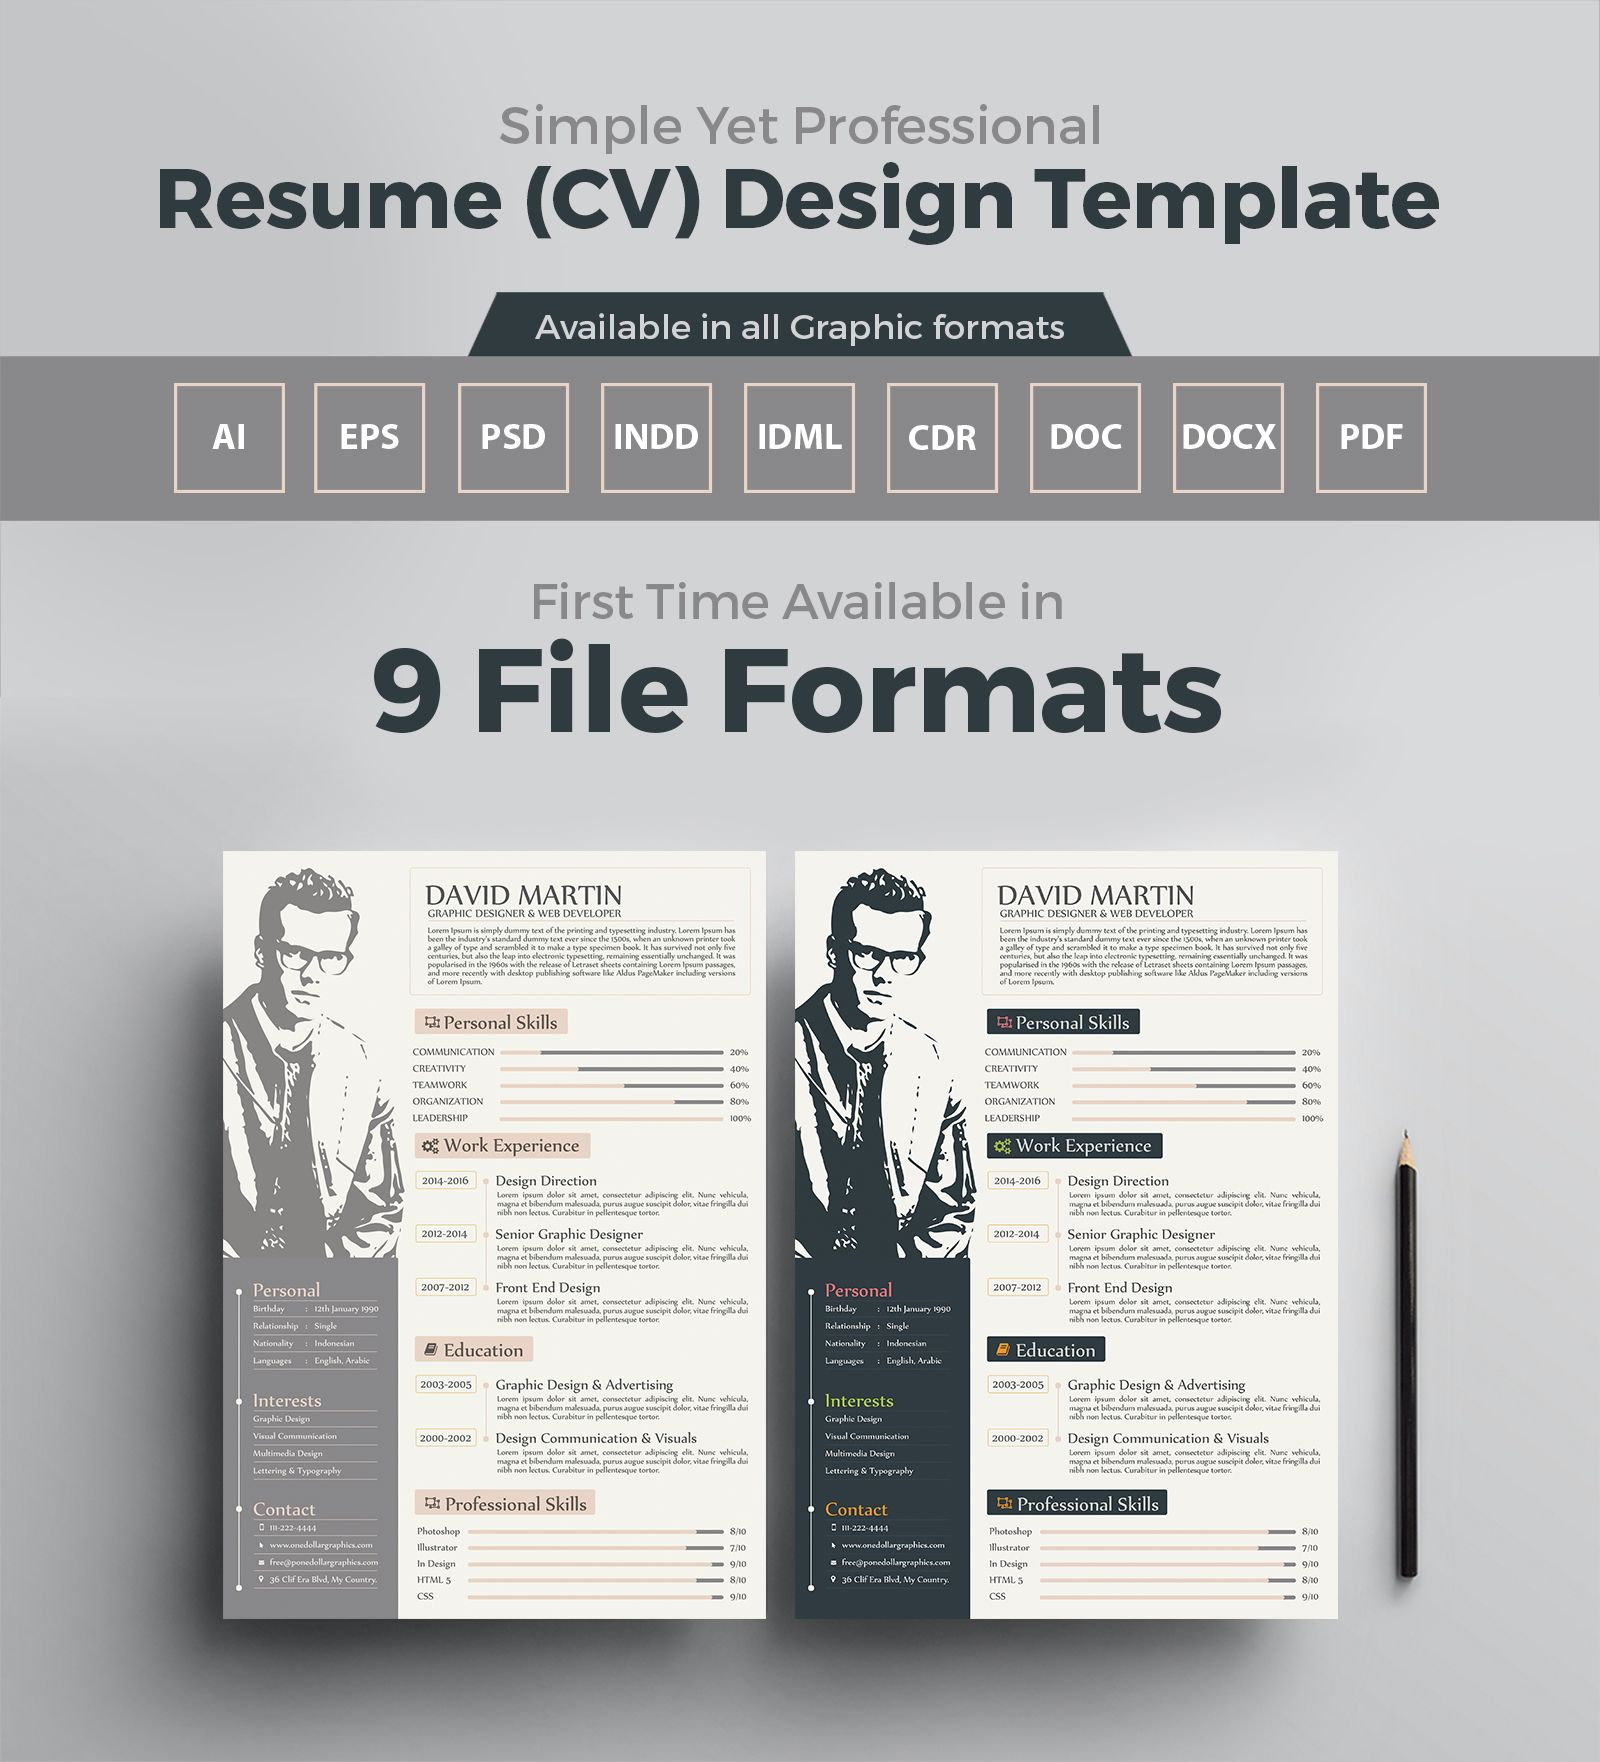 Simple Yet Professional Resume Cv Design Template 3